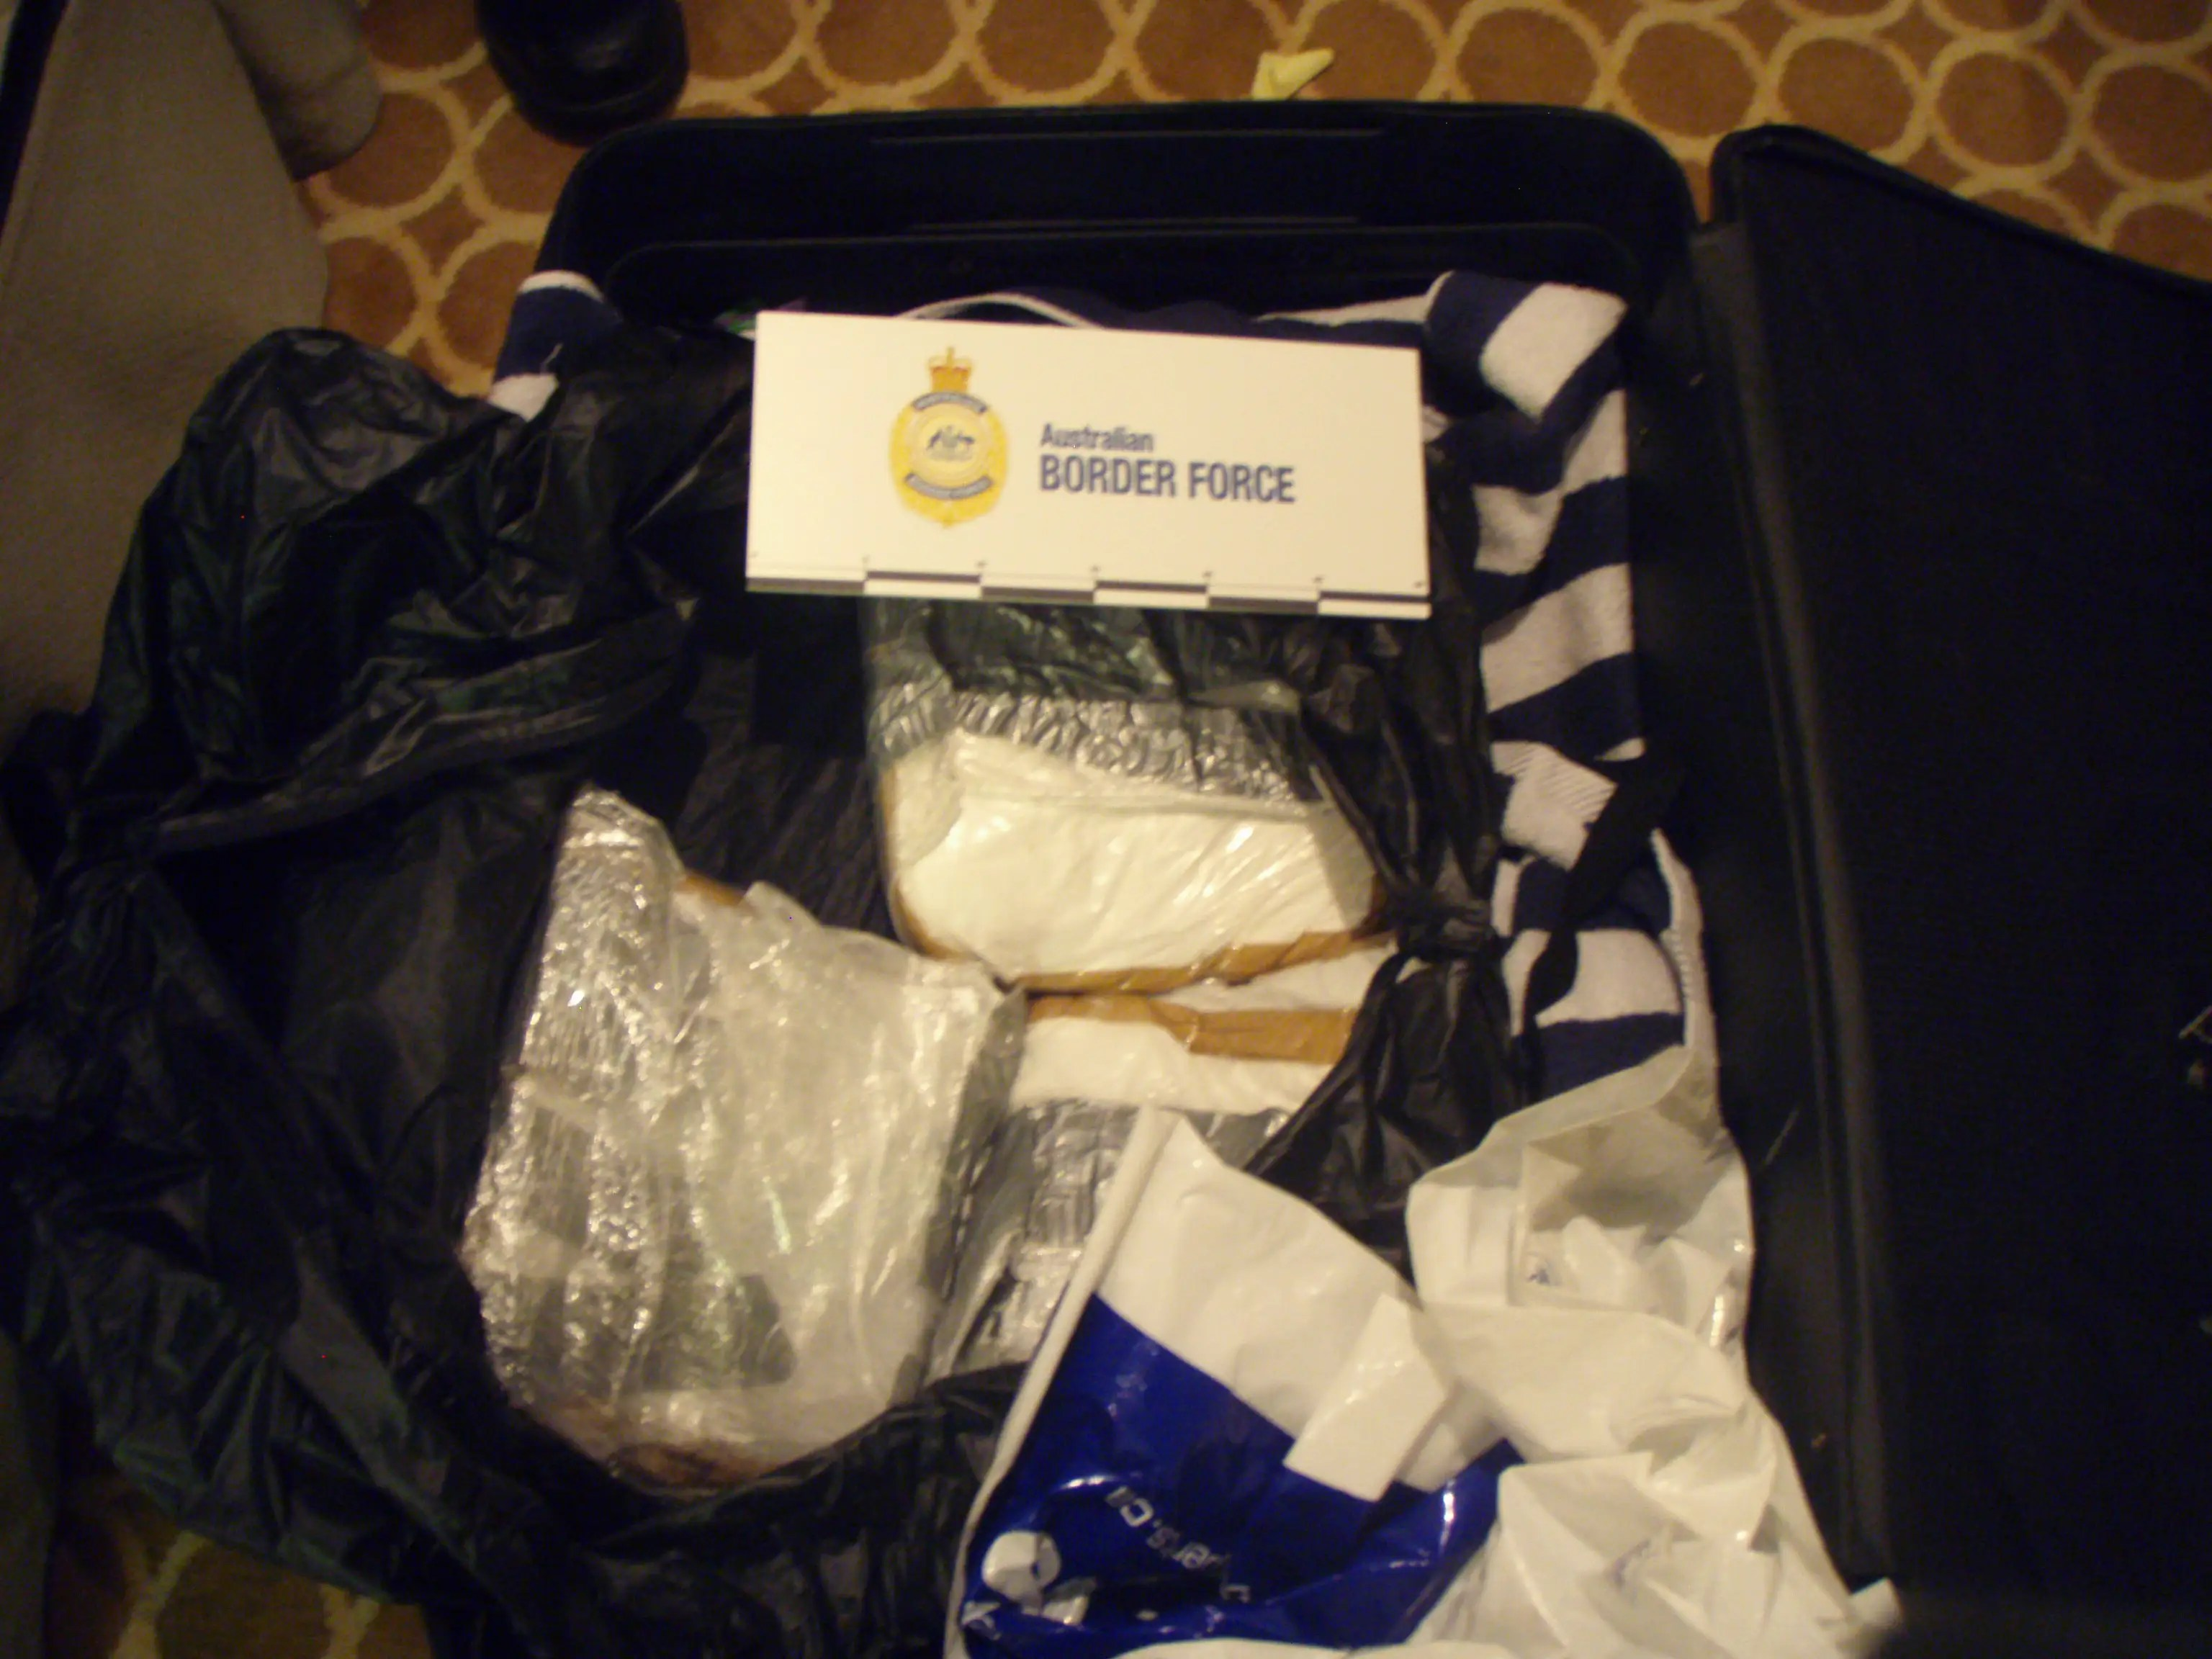 Cocaine seized in Australia aboard a cruise ship